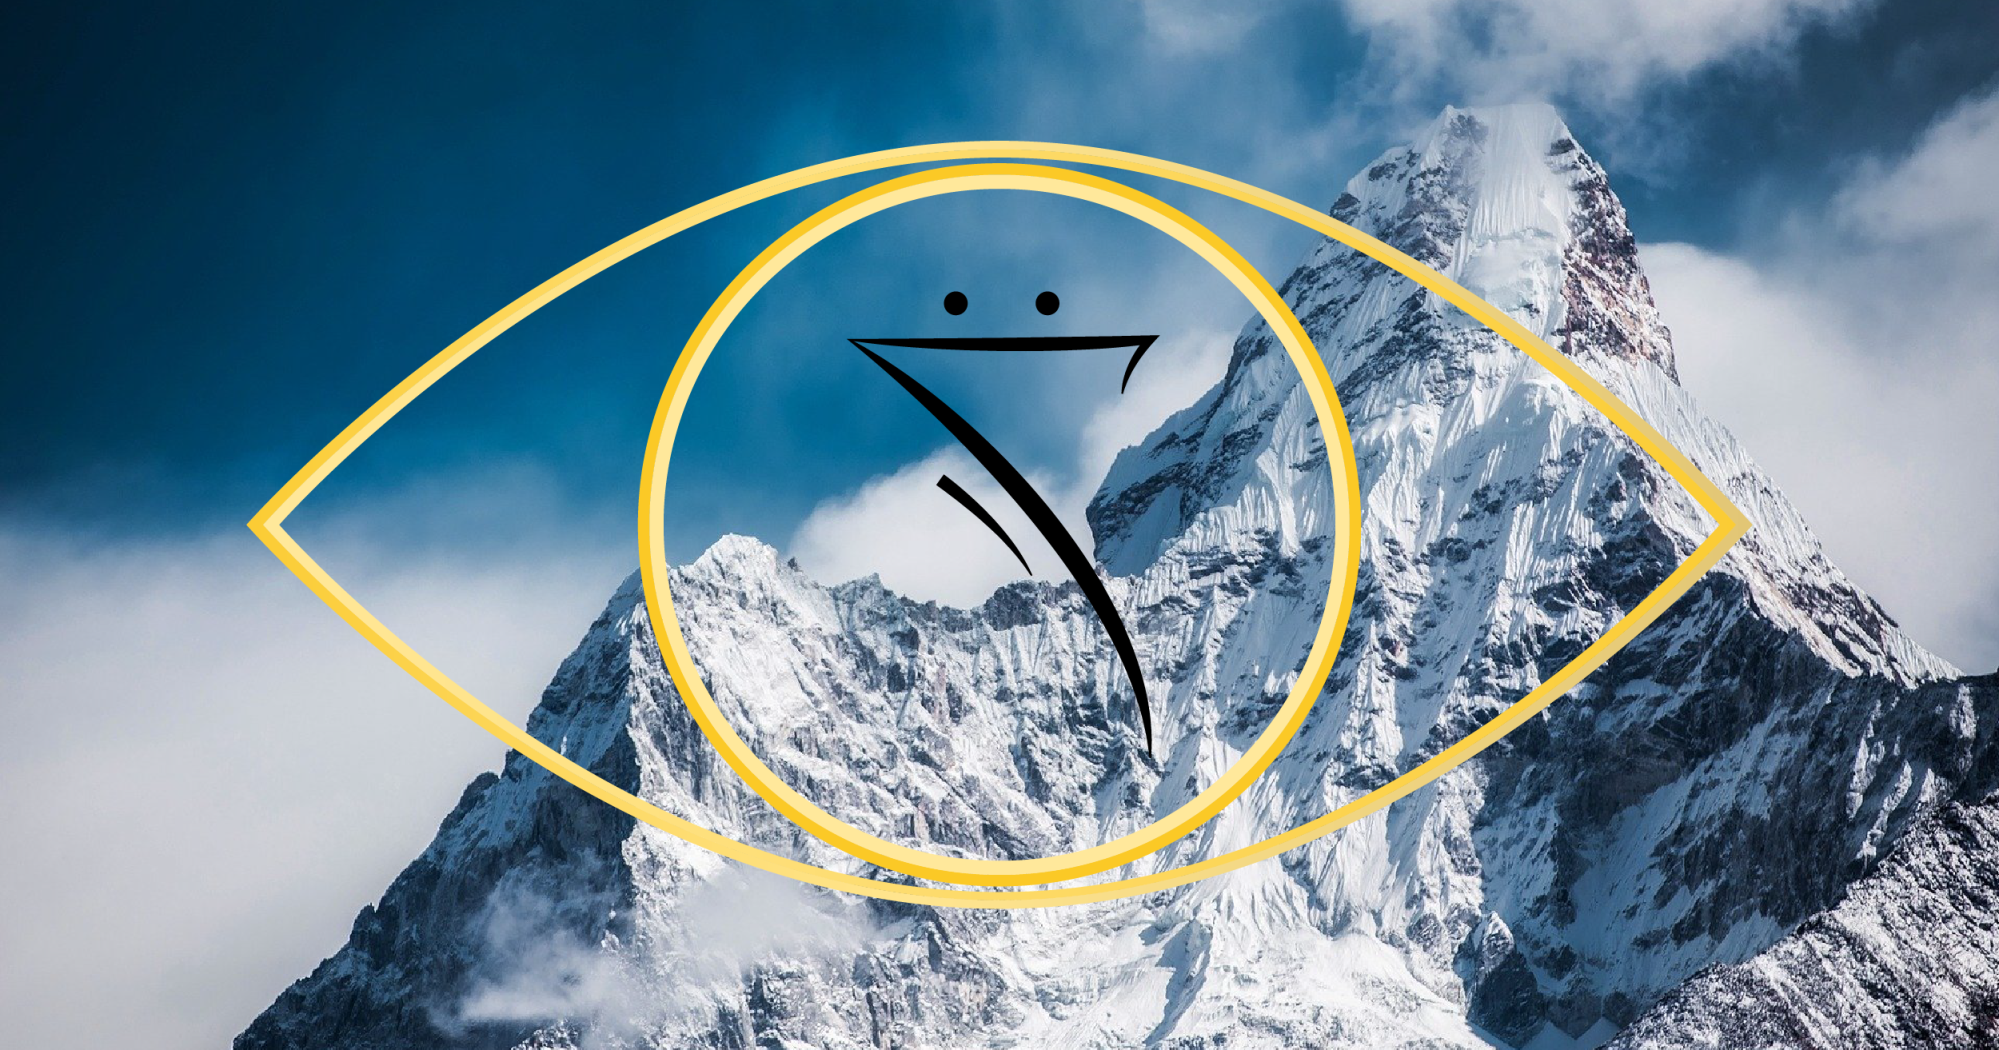 The Escapists header featuring some mountains and a golden eye with a backwards 7 in the middle.